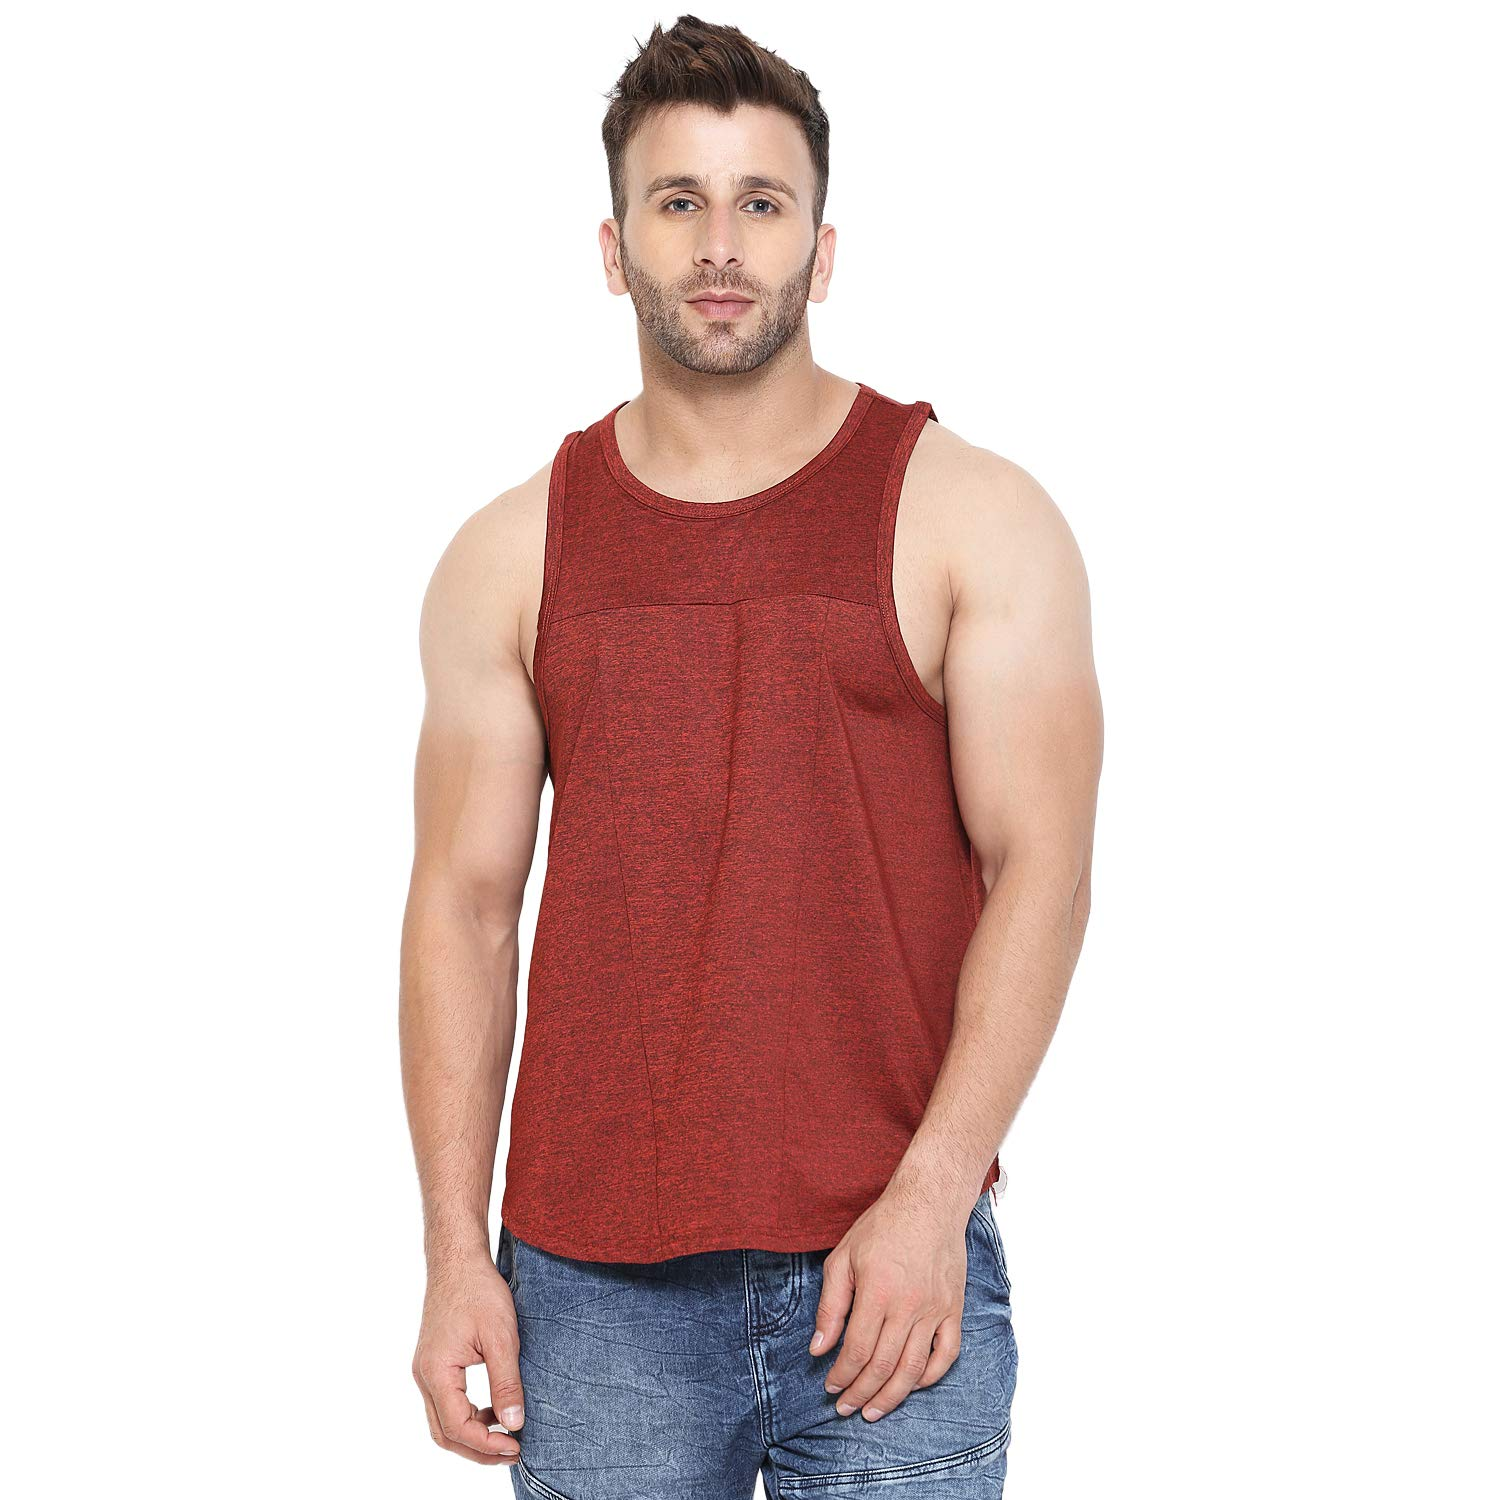 CHKOKKO Men Gym Tank Tops Sports Sleeveless Vest